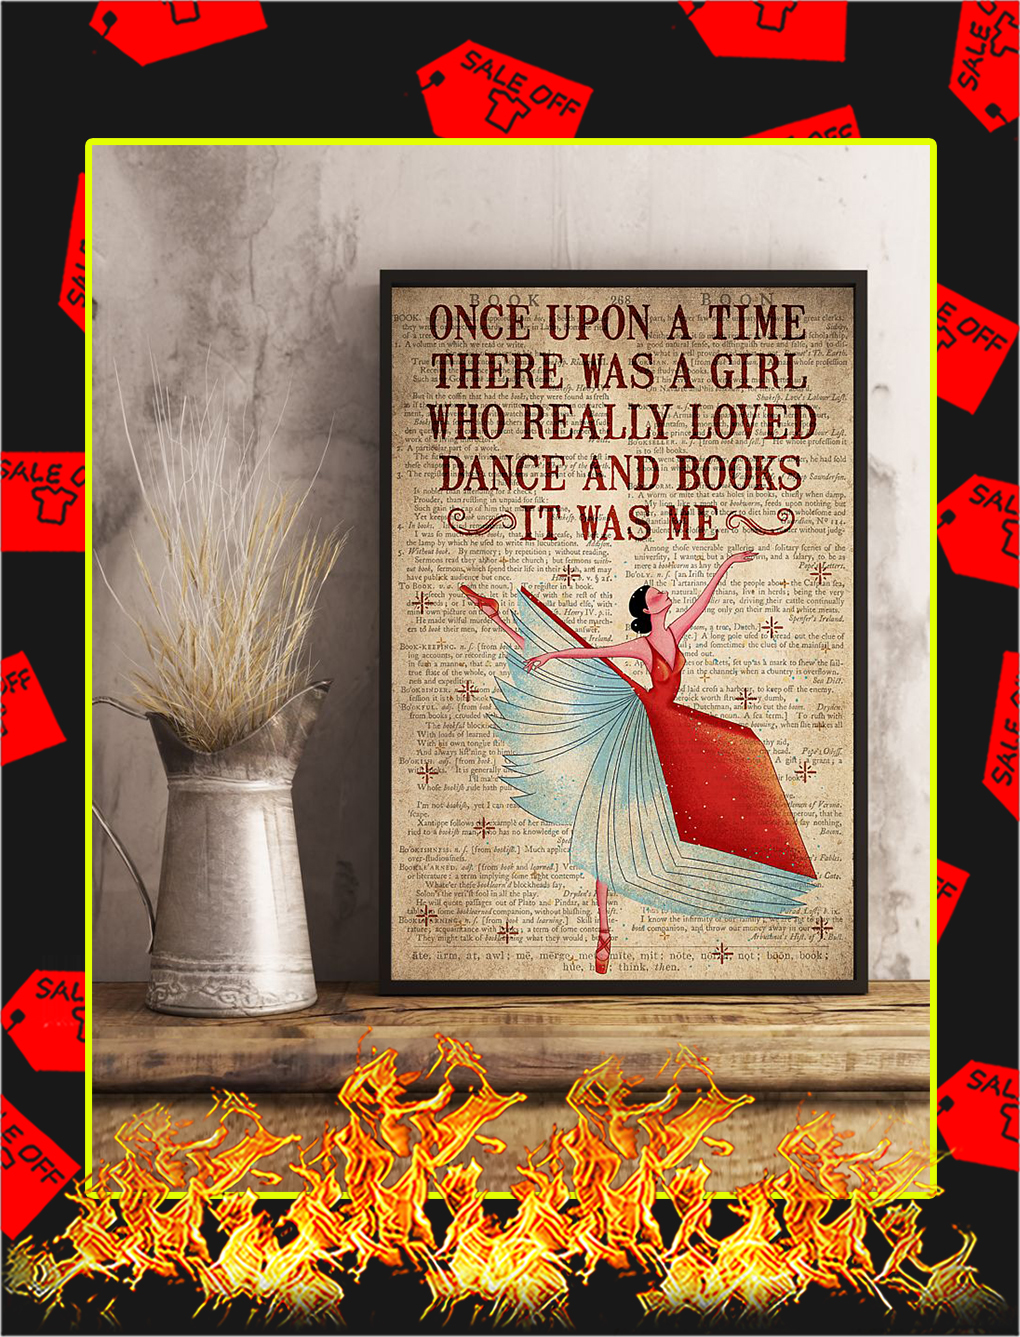 Once Upon A Time There Was A Girl Loved Dance and Books Poster- A4